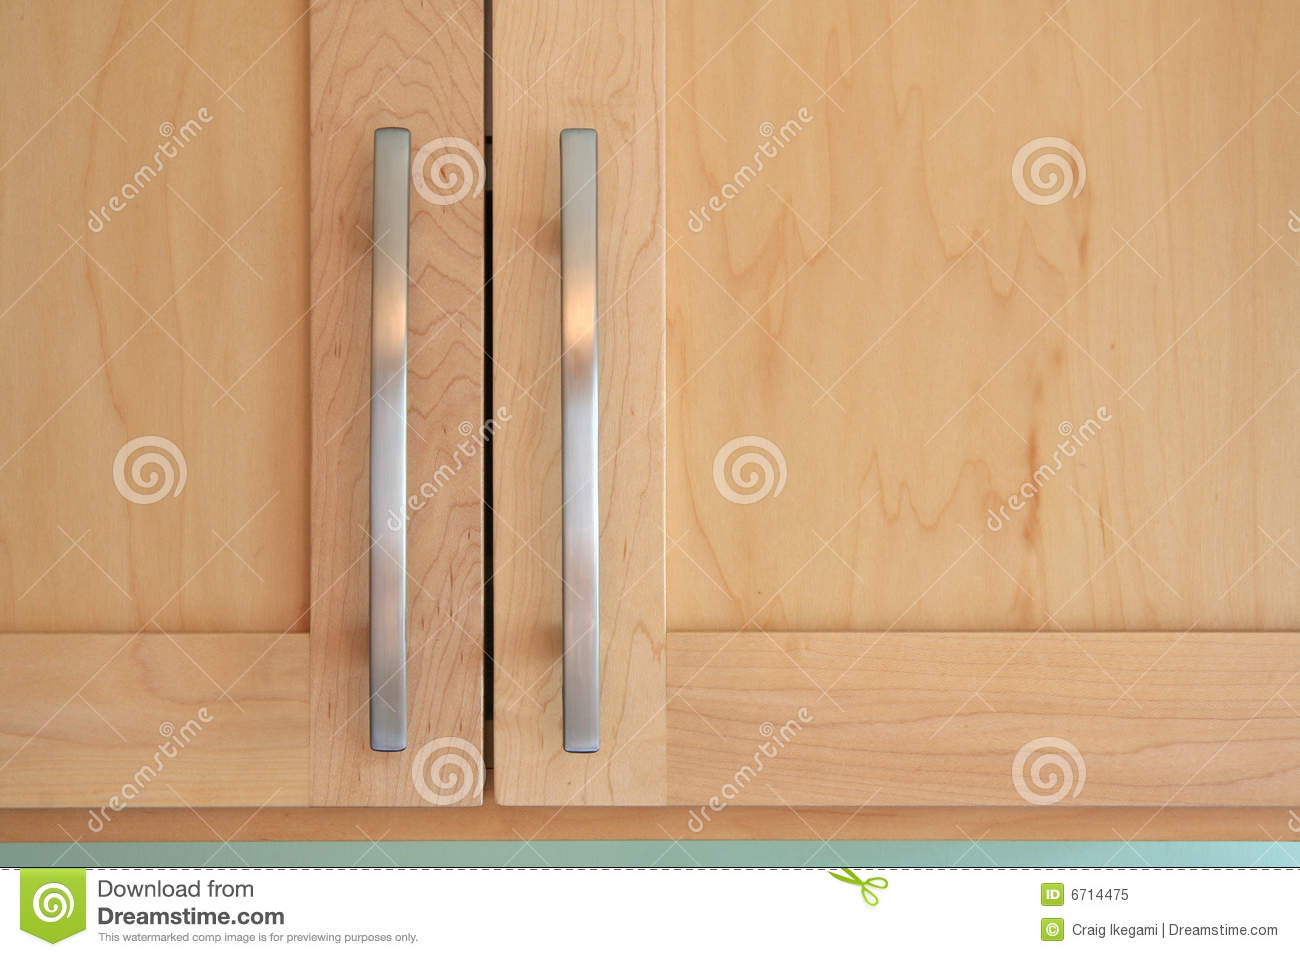 Maple Kitchen Cupboard Doors Maple Doors And Handles Royalty Free Stock Photo Image 6714475